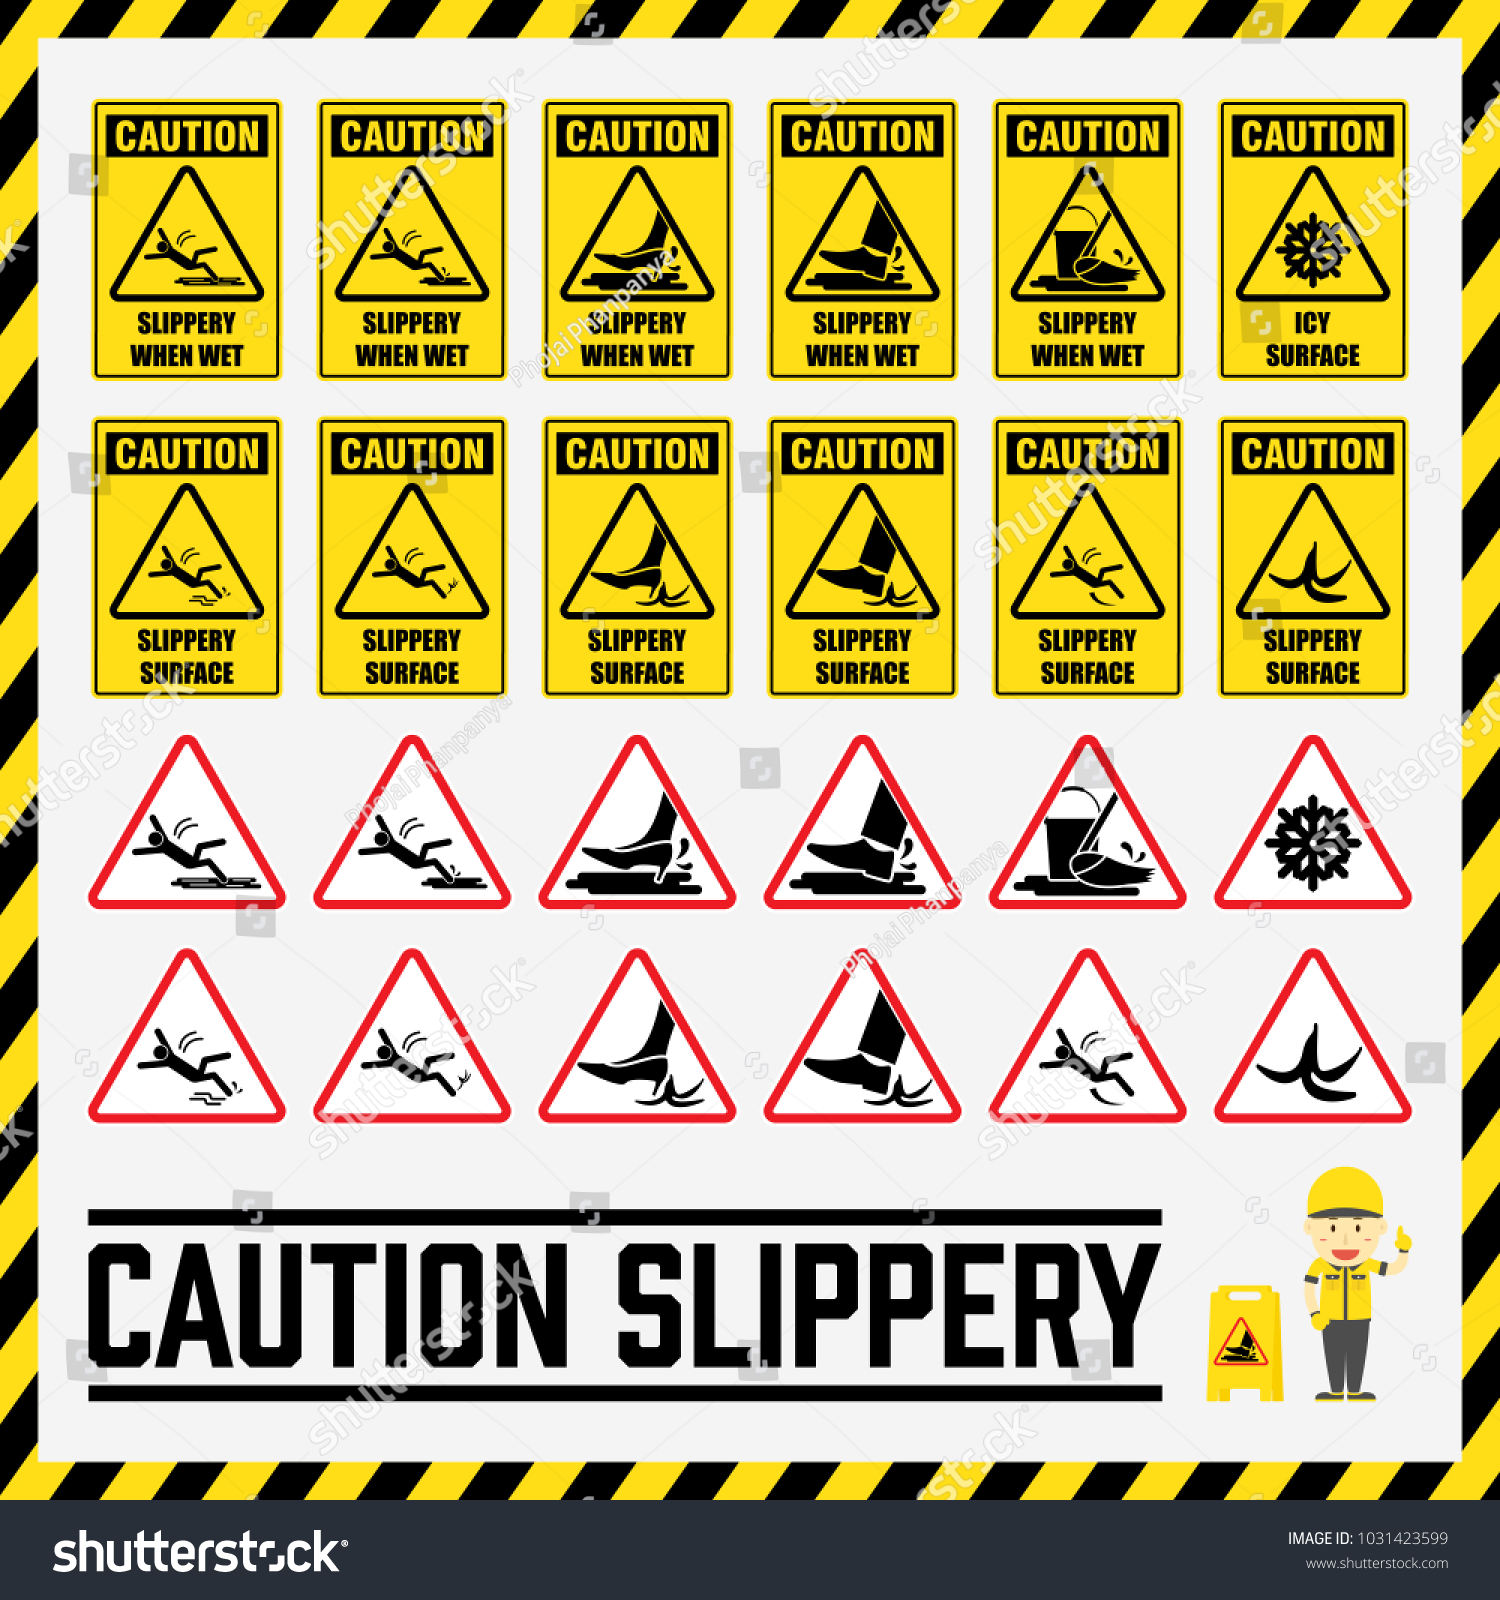 Workplace safety signs and symbols gallery symbol and sign ideas set safety caution signs symbols slippery stock vector 1031423599 set of safety caution signs and symbols biocorpaavc